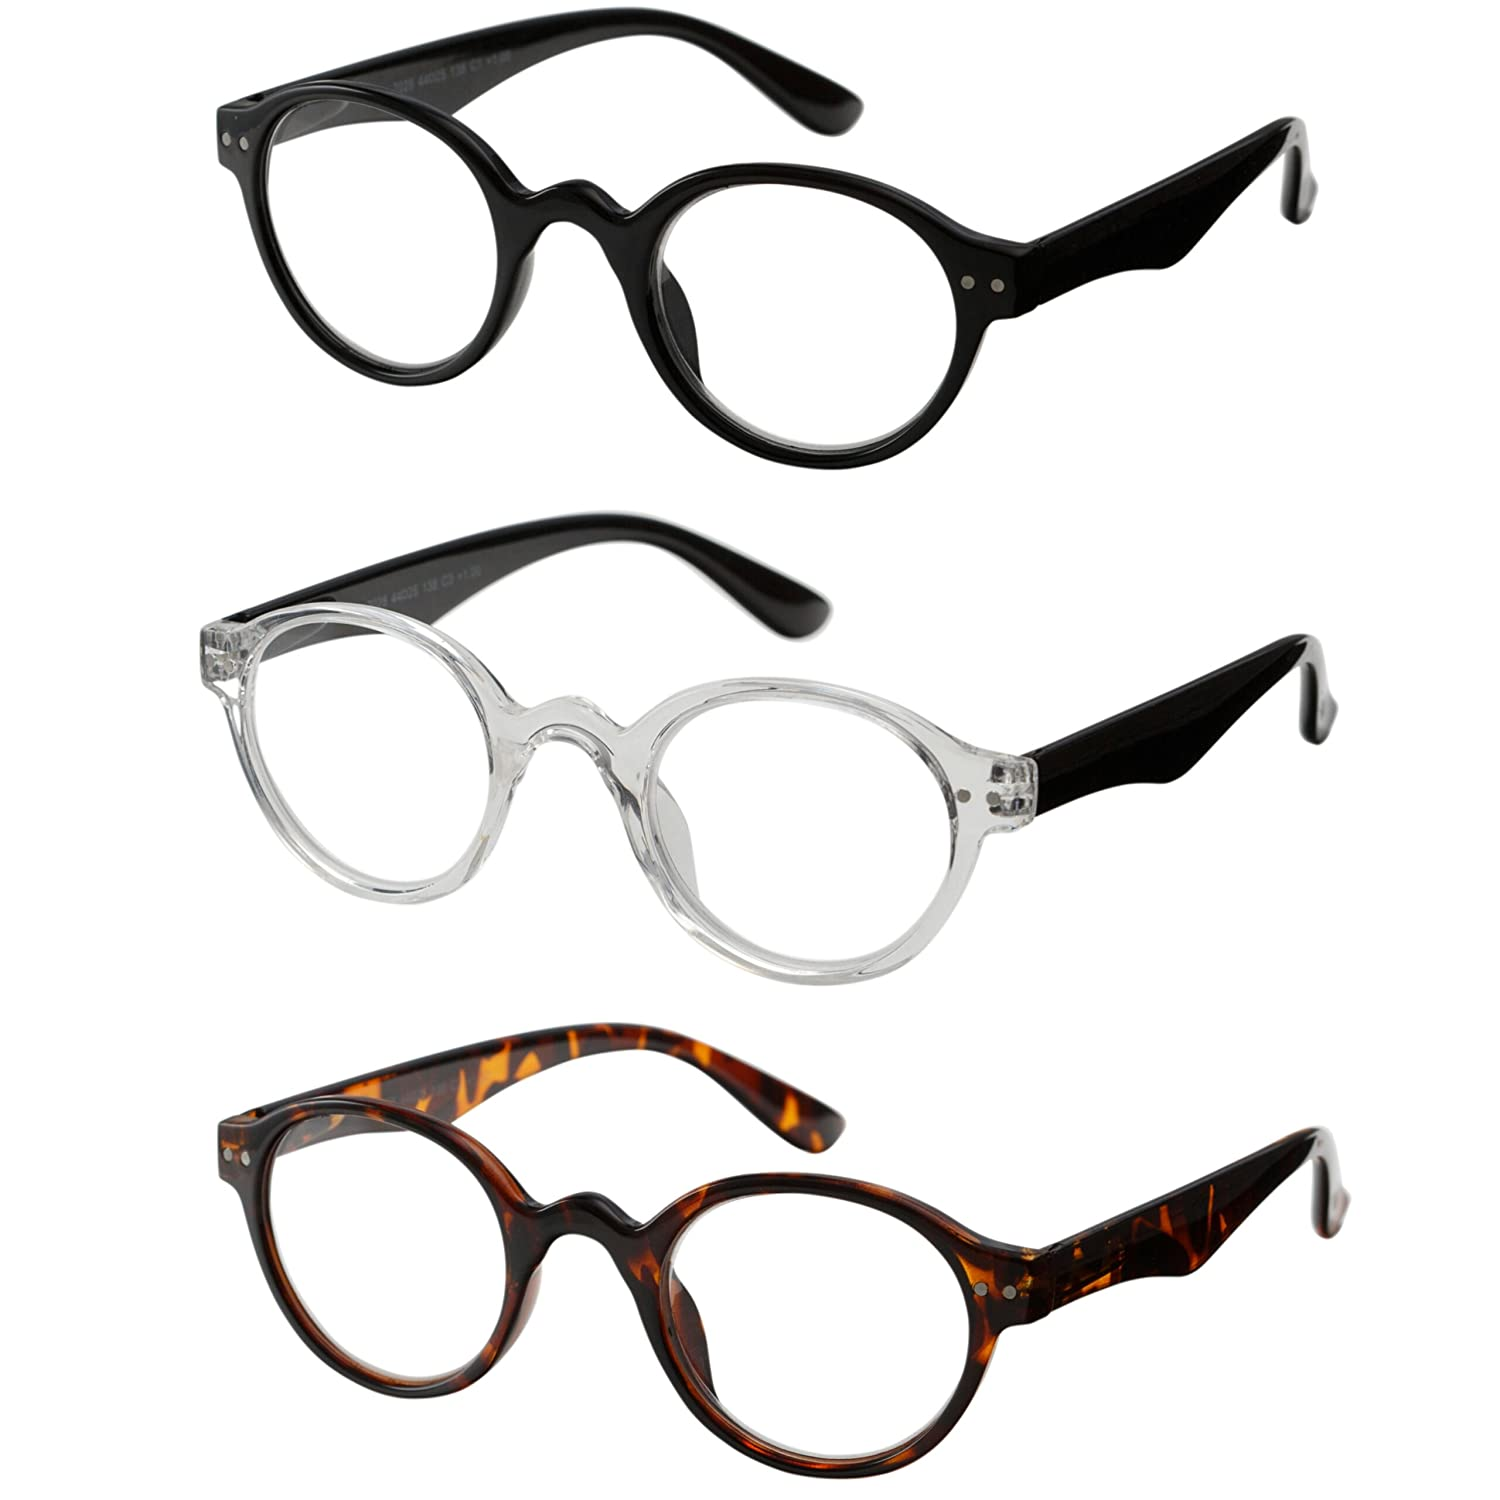 877a2fcc710 Amazon.com  Reading Glasses 3 Pair Spring Hinge Professer Readers for Men  and Women Fashion Glasses for Reading +1  Clothing